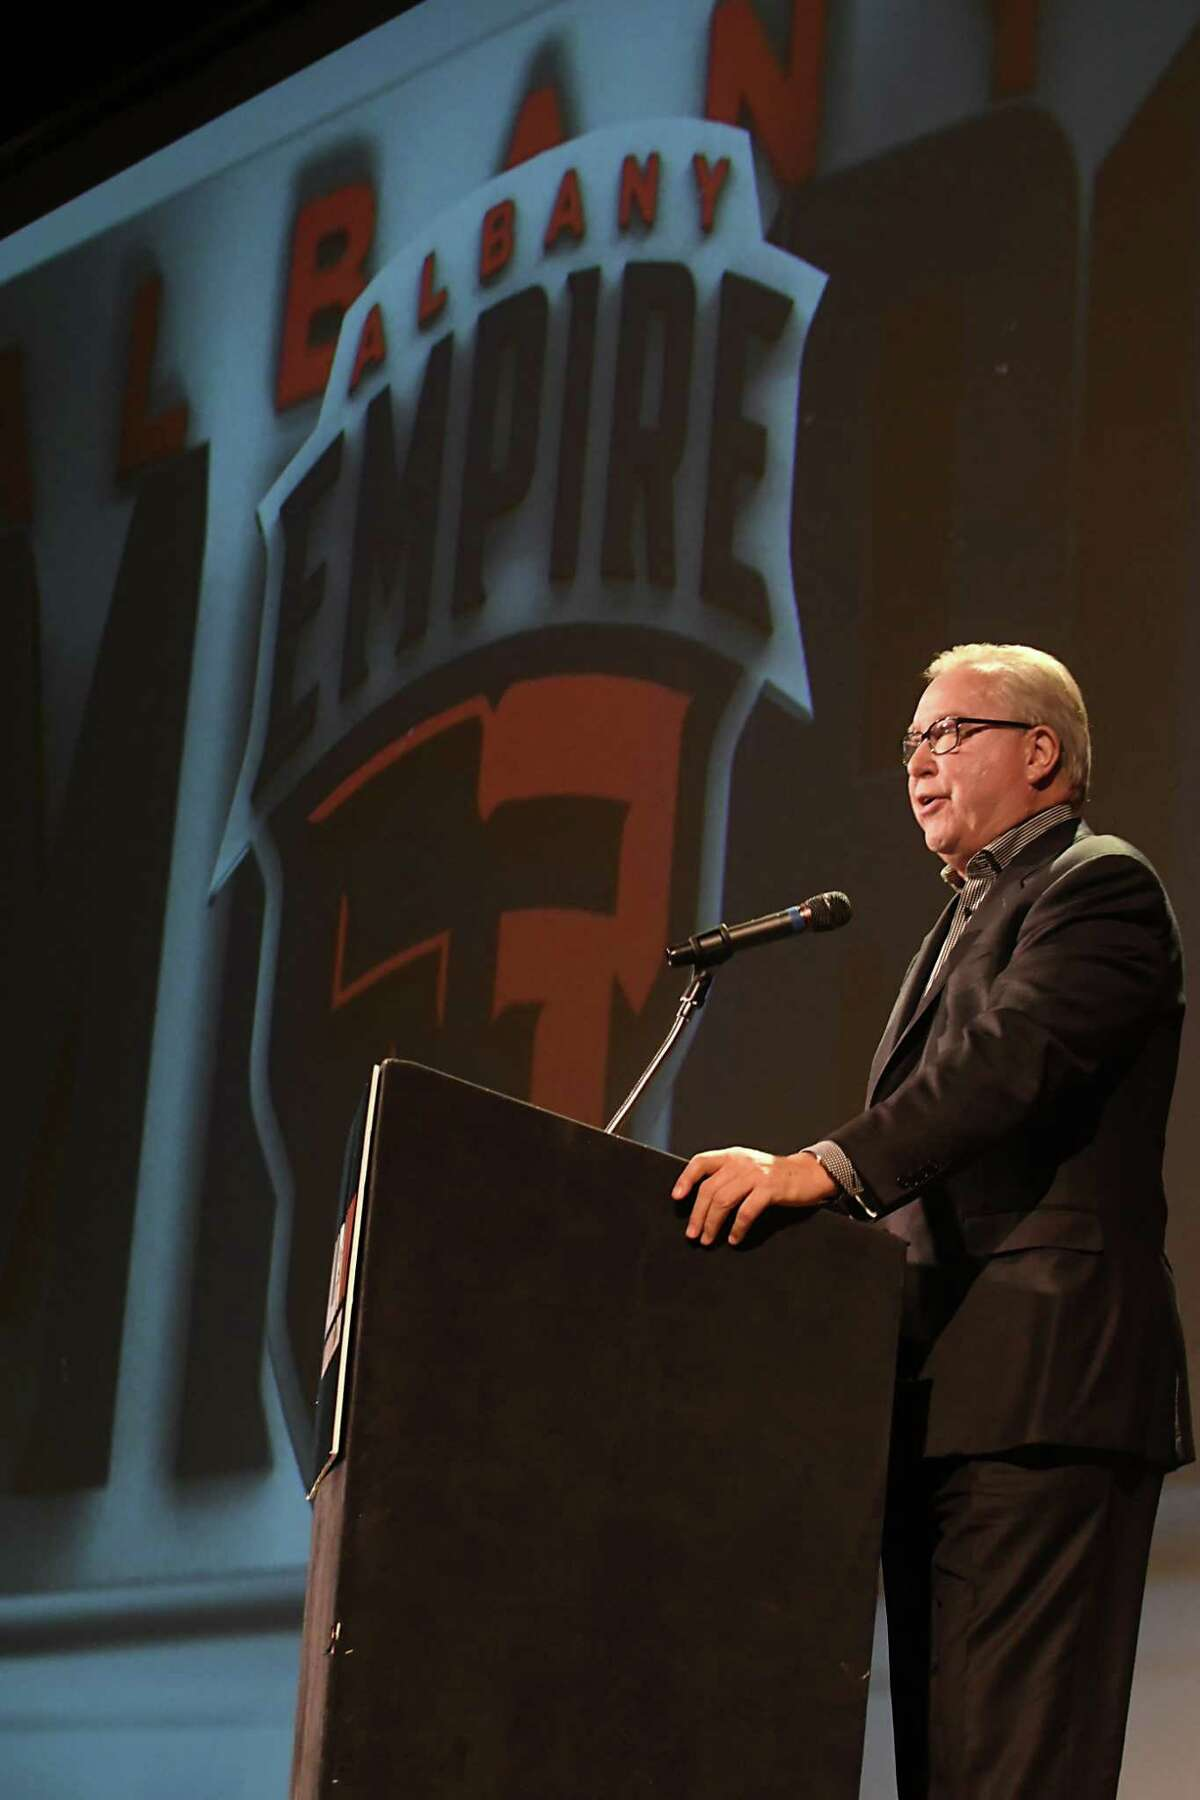 Former NFL quarterback Ron Jaworski speaks during a news conference at the Palace Theater to reveal